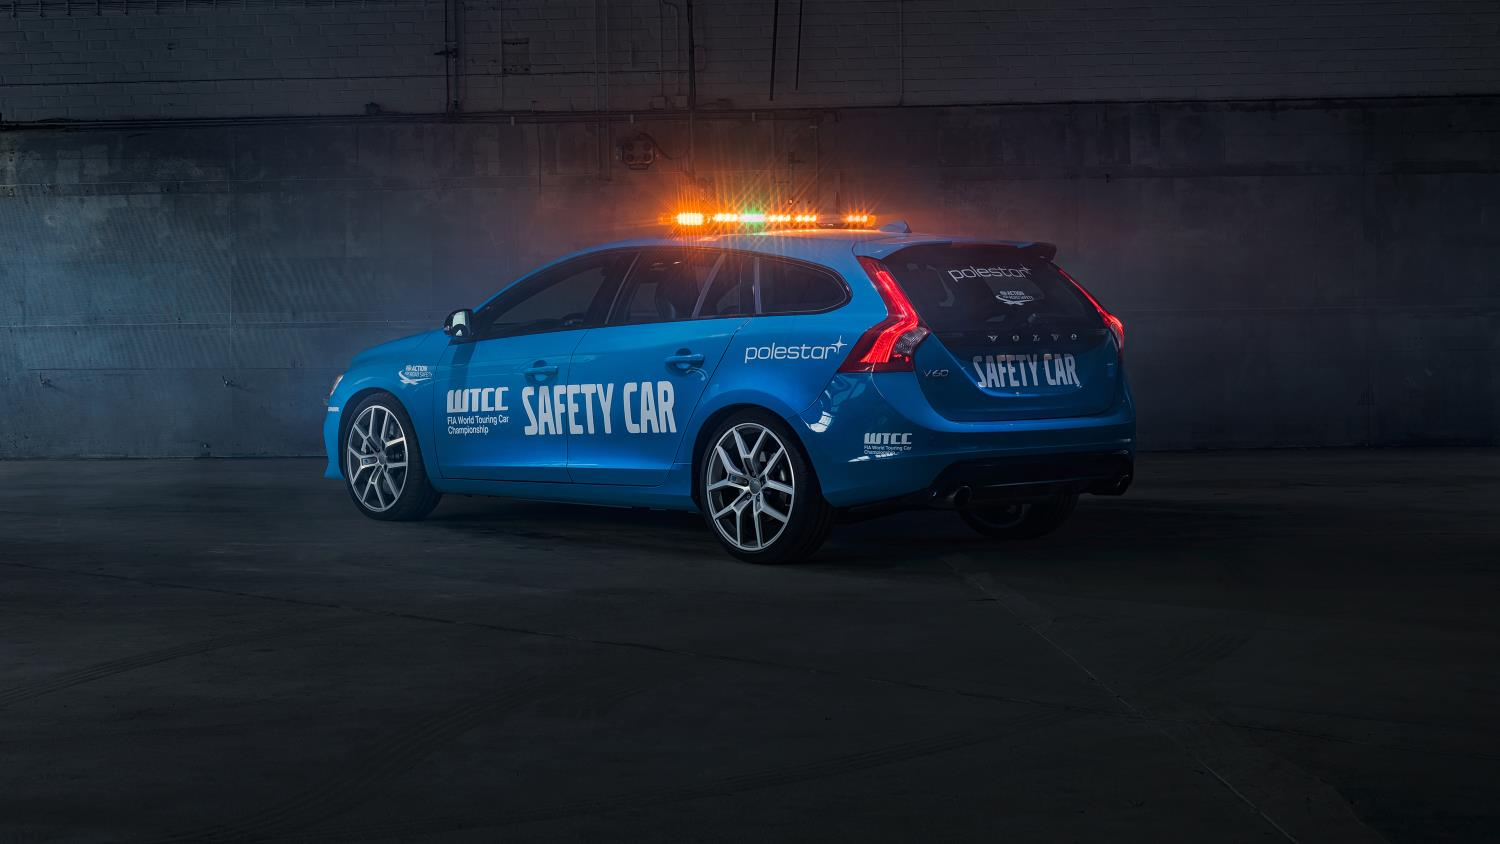 Volvo V60 Polestar Is the 2016 WTCC Safety Car - autoevolution